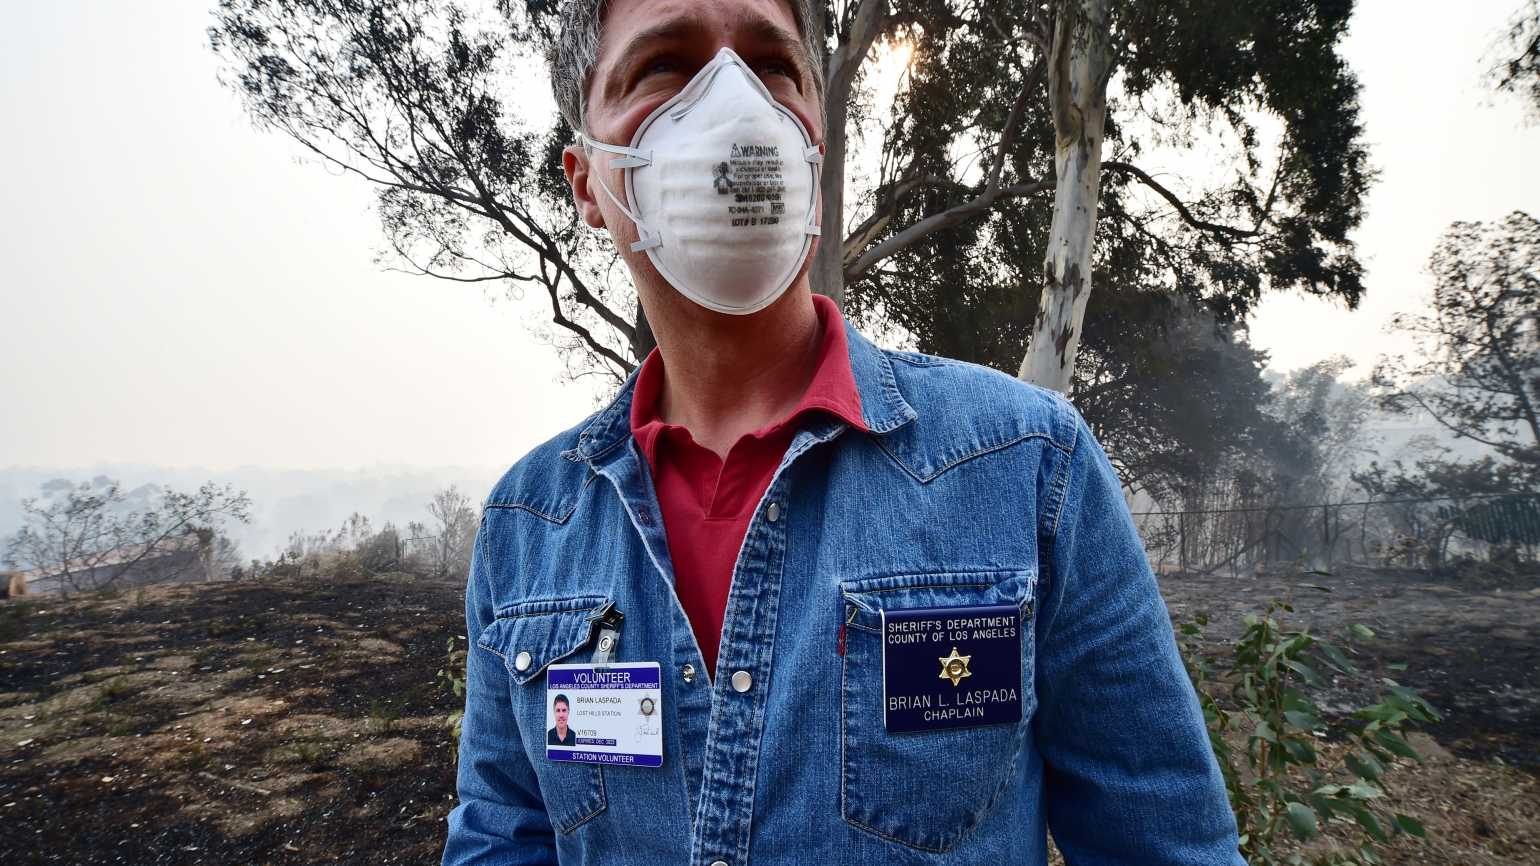 Los Angeles Sheriff's Department chaplain Pastor Brian La Spade walks through properties in the Points Dume neighborhood of Malibu, California, where members of his congregation live, on November 10, 2018, after the Woolsey Fire tore through the neighborhood overnight. - Firefighters in California on Saturday battled raging blazes at both ends of the state that have left at least nine people dead and thousands of homes destroyed, but there was little hope of containing the flames anytime soon. More than 250